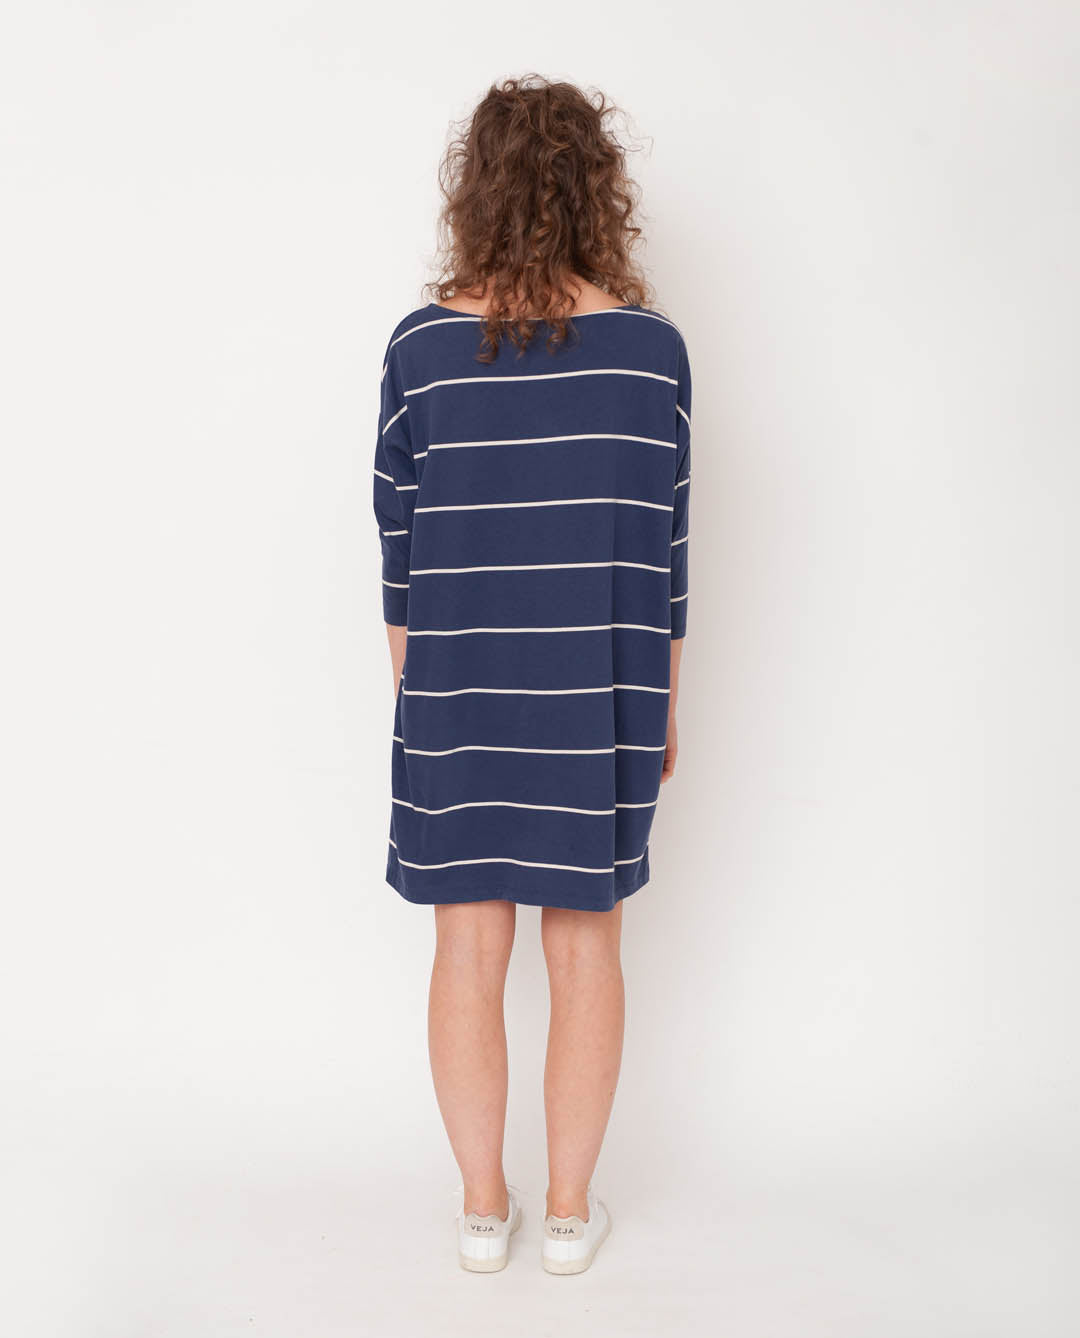 Sophie-Sue Organic Cotton Dress In Midnight & Natural